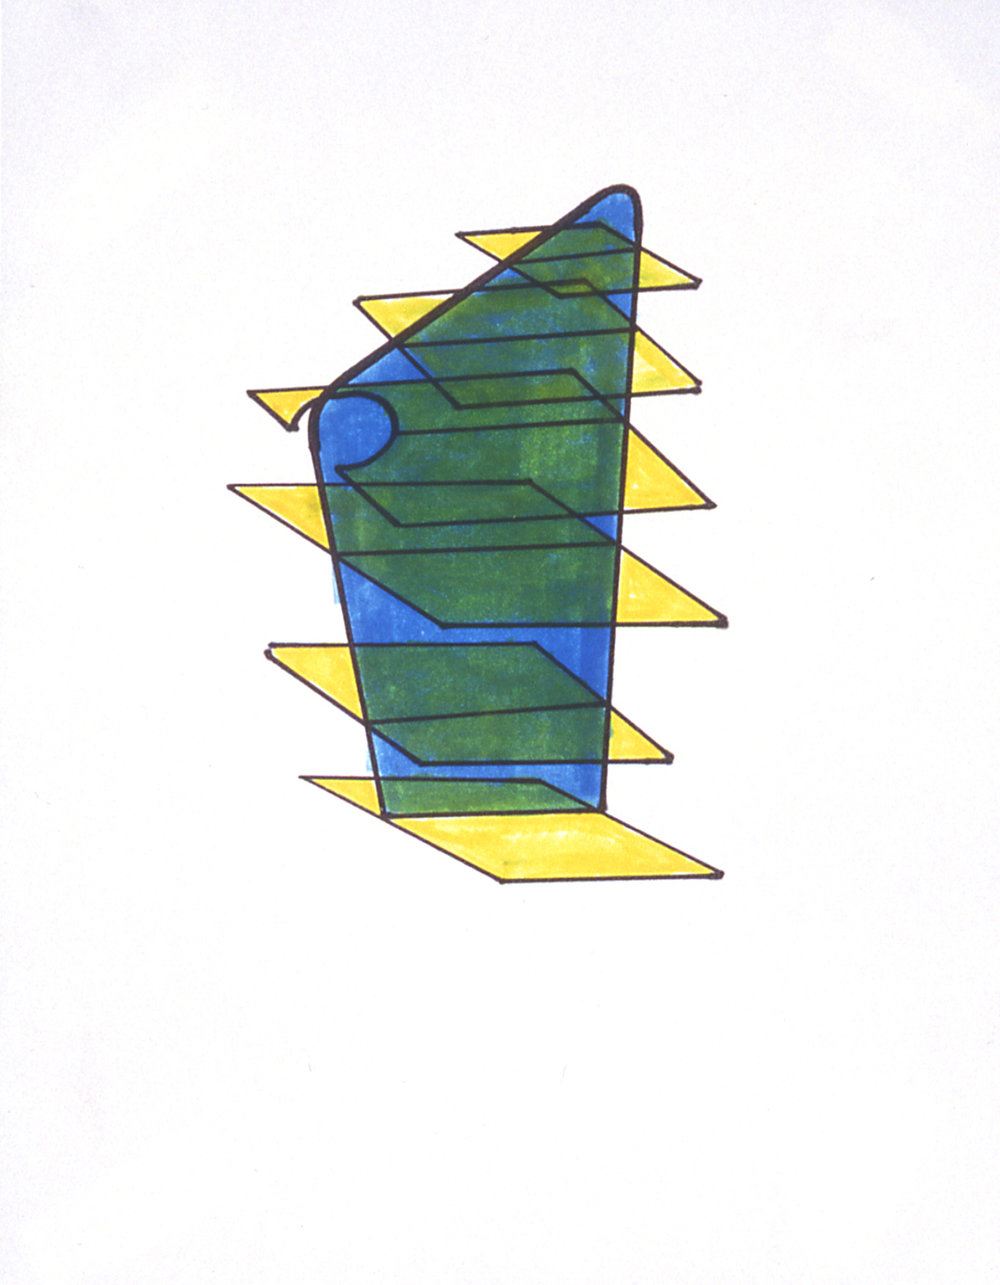 Assumed Solidity II, 1999 Permanent marker on 100% rag paper 11.5 x 9 inches / 29x23 cm